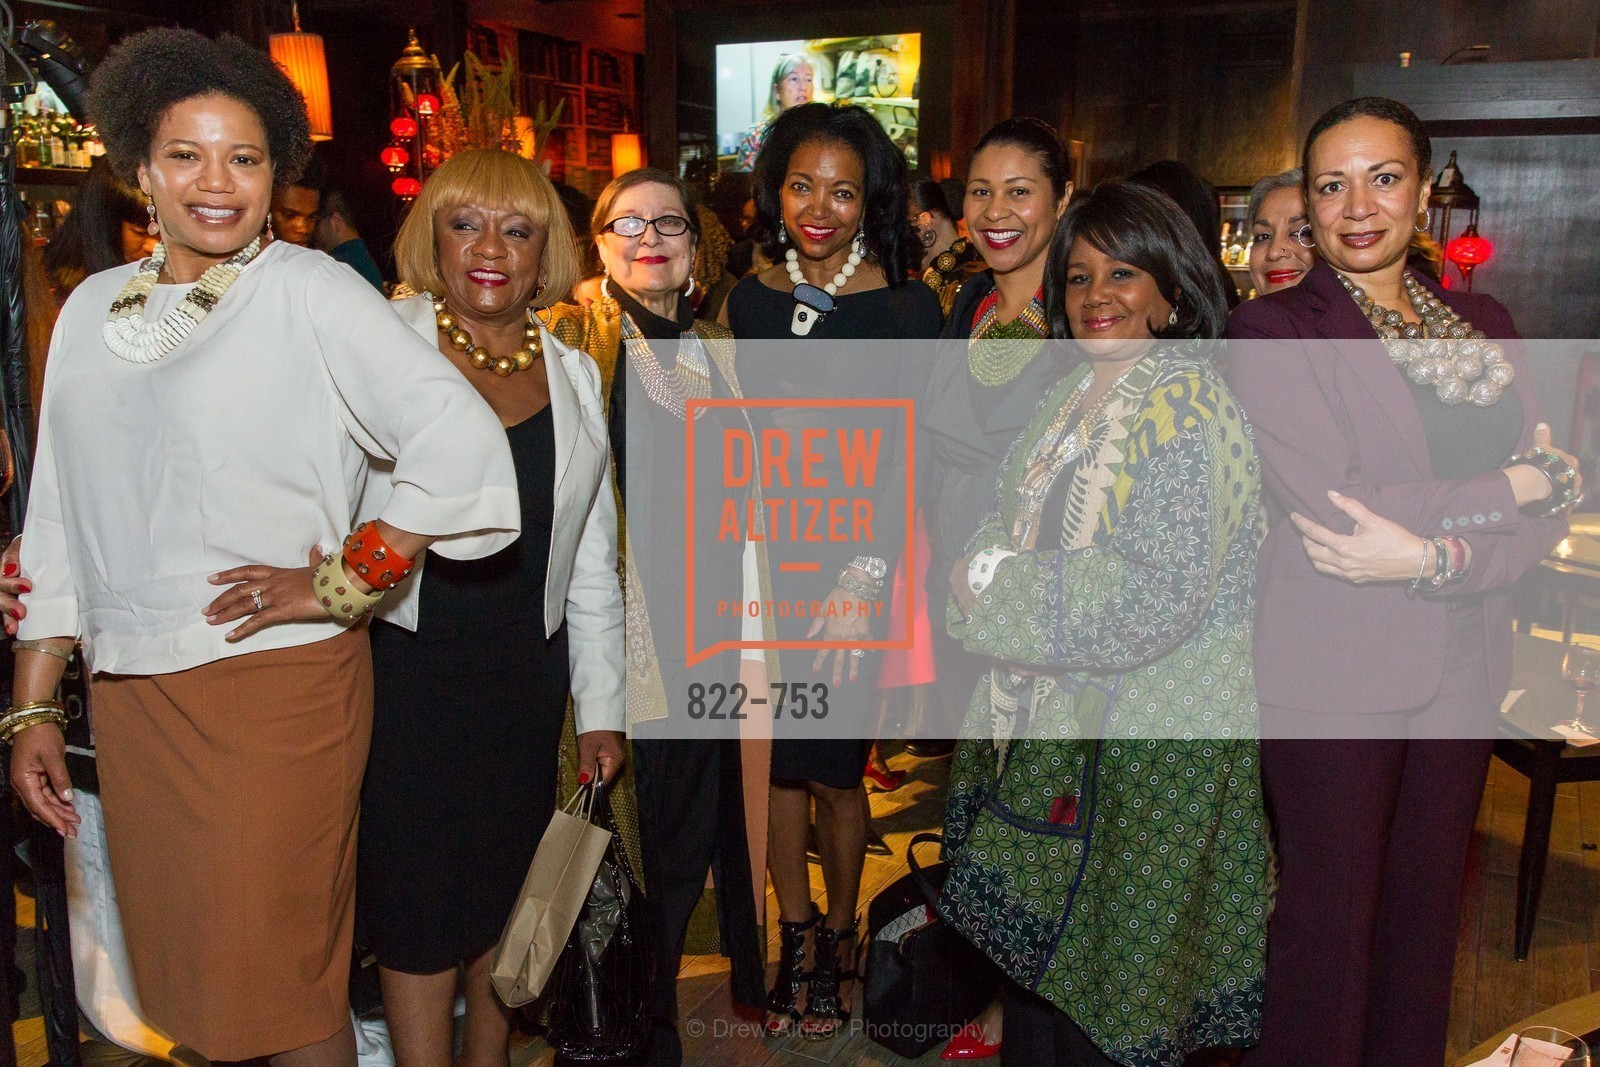 Yvette Hollingsworth, Brenda Wright, Masha Archer, Denise Bradley Tyson, London Breed, Carolyn Tyler, Dierdre Levington, INSPIRED LUXE Launch Party Hosted by Denise Bradley Tyson, US, Matrix Fillmore, May 28th, 2015,Drew Altizer, Drew Altizer Photography, full-service agency, private events, San Francisco photographer, photographer california